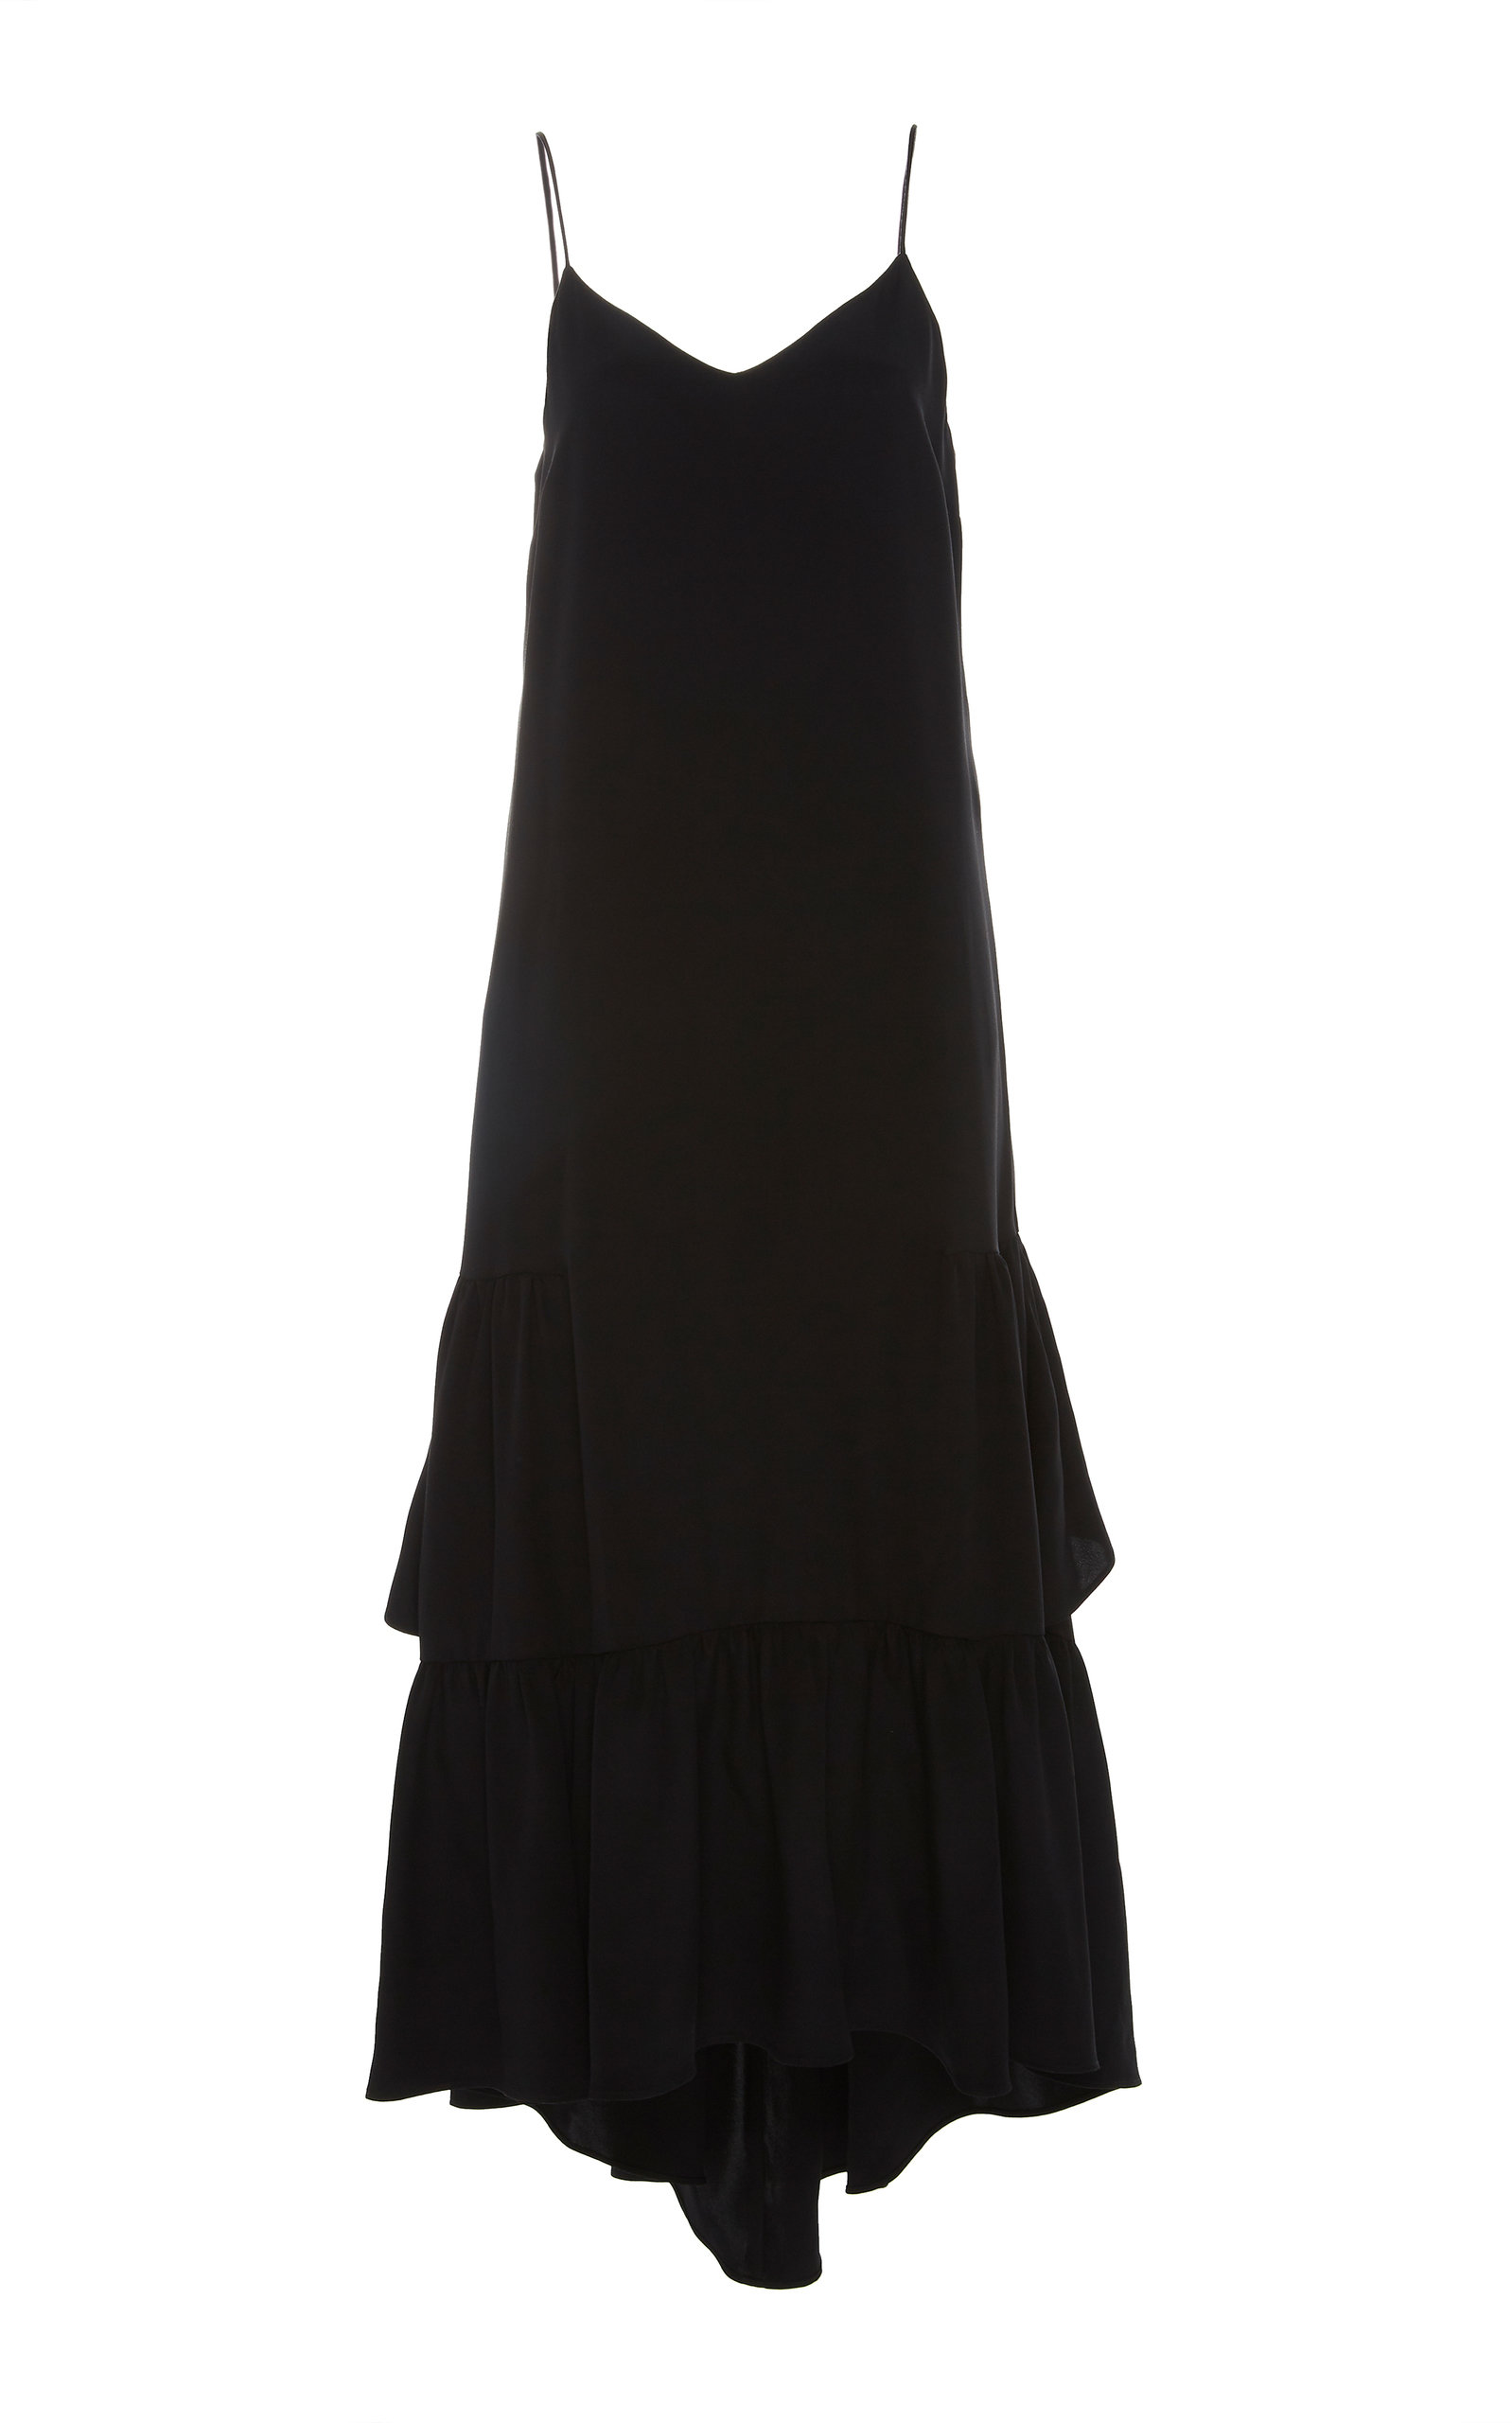 MAREI 1998 Onagraceae Cami Long Dress With Ruffles in Black